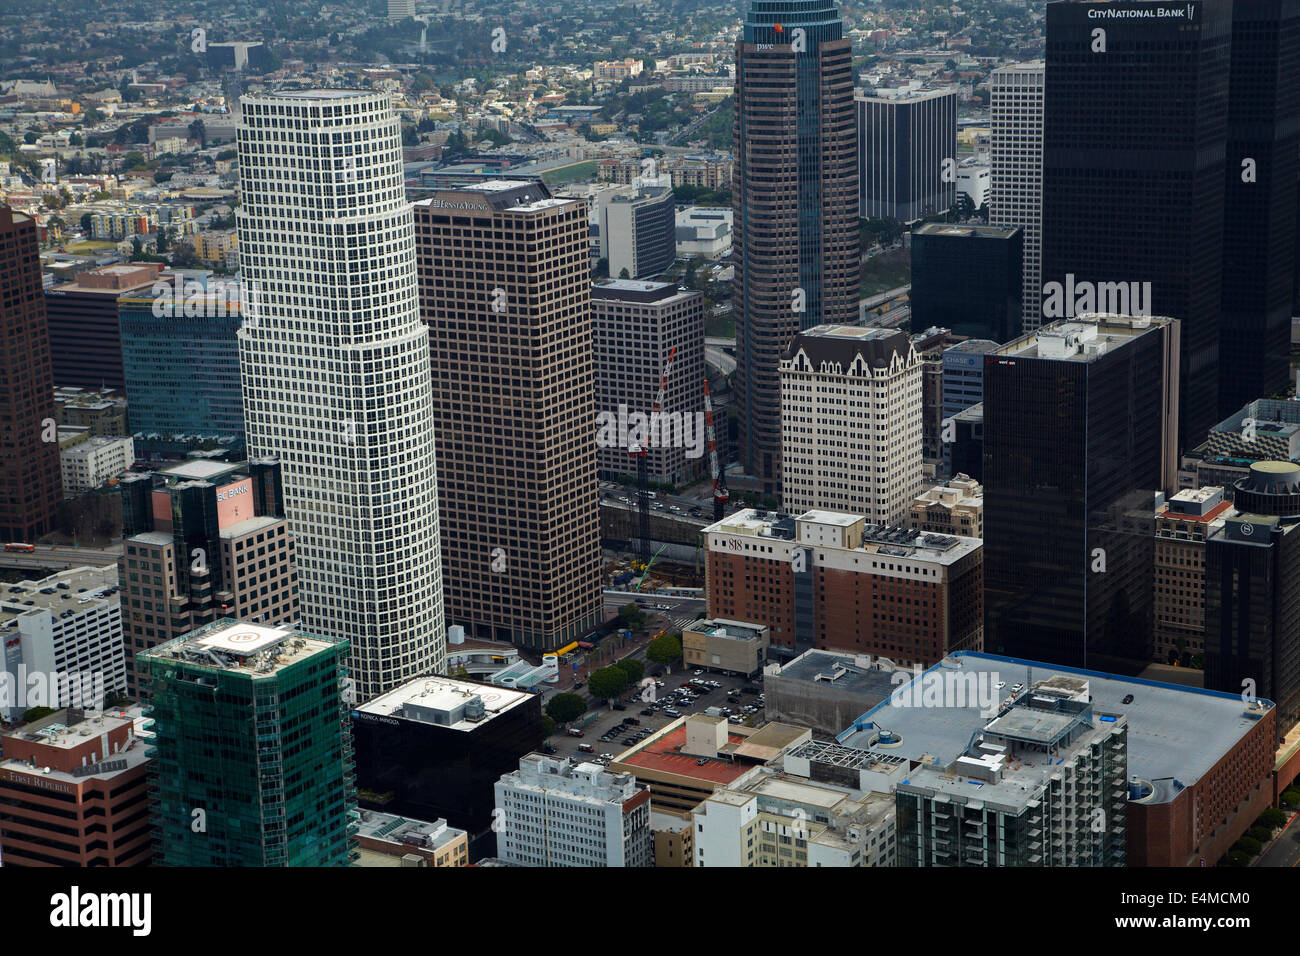 Downtown Los Angeles, including 777 Tower on left, California, USA - aerial - Stock Image